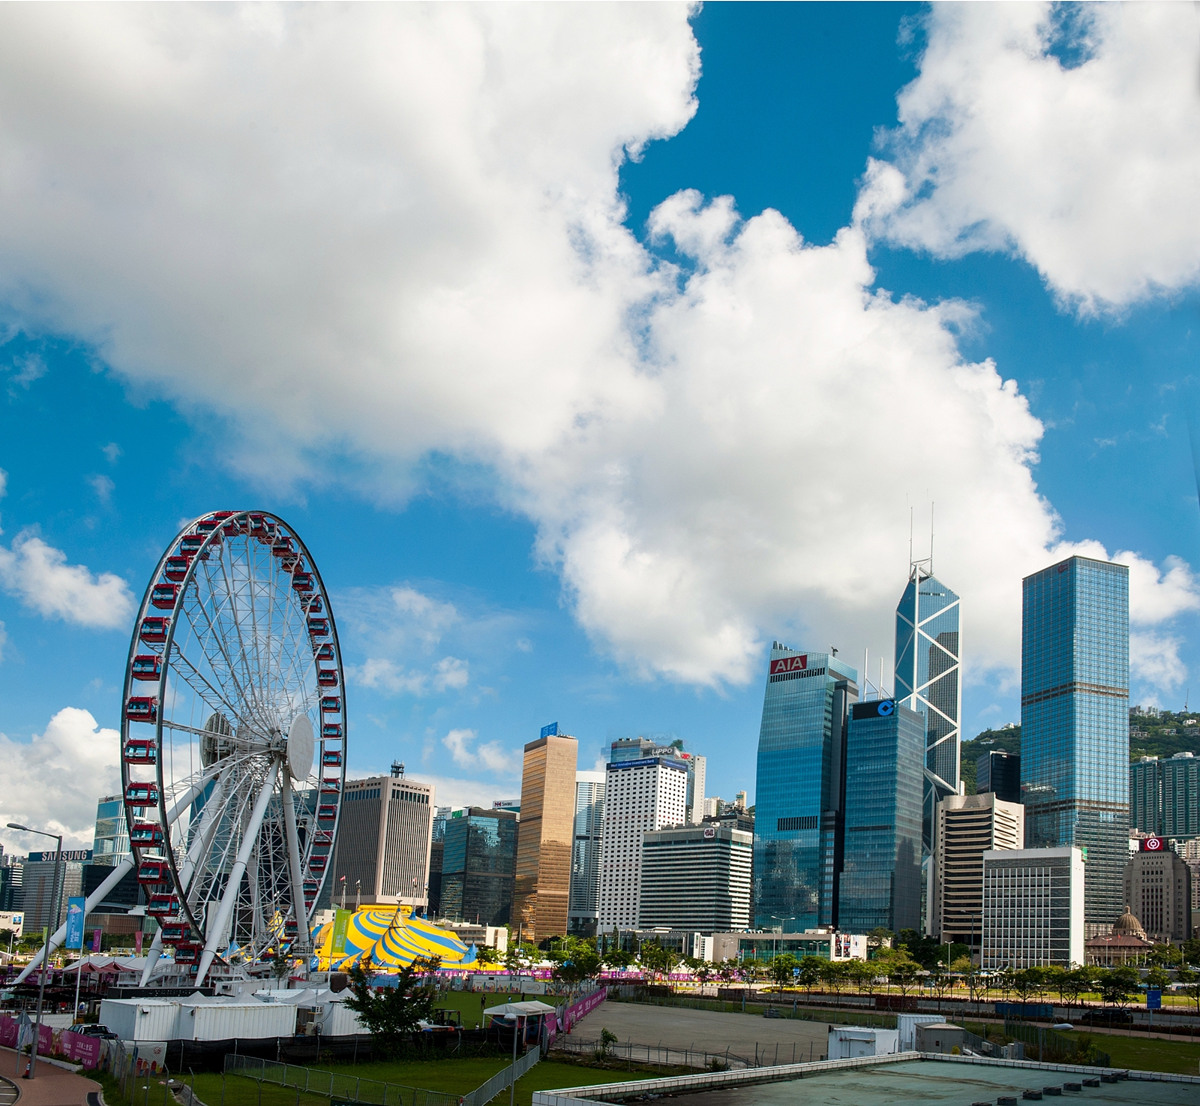 China vows to take countermeasures against US actions over Hong Kong